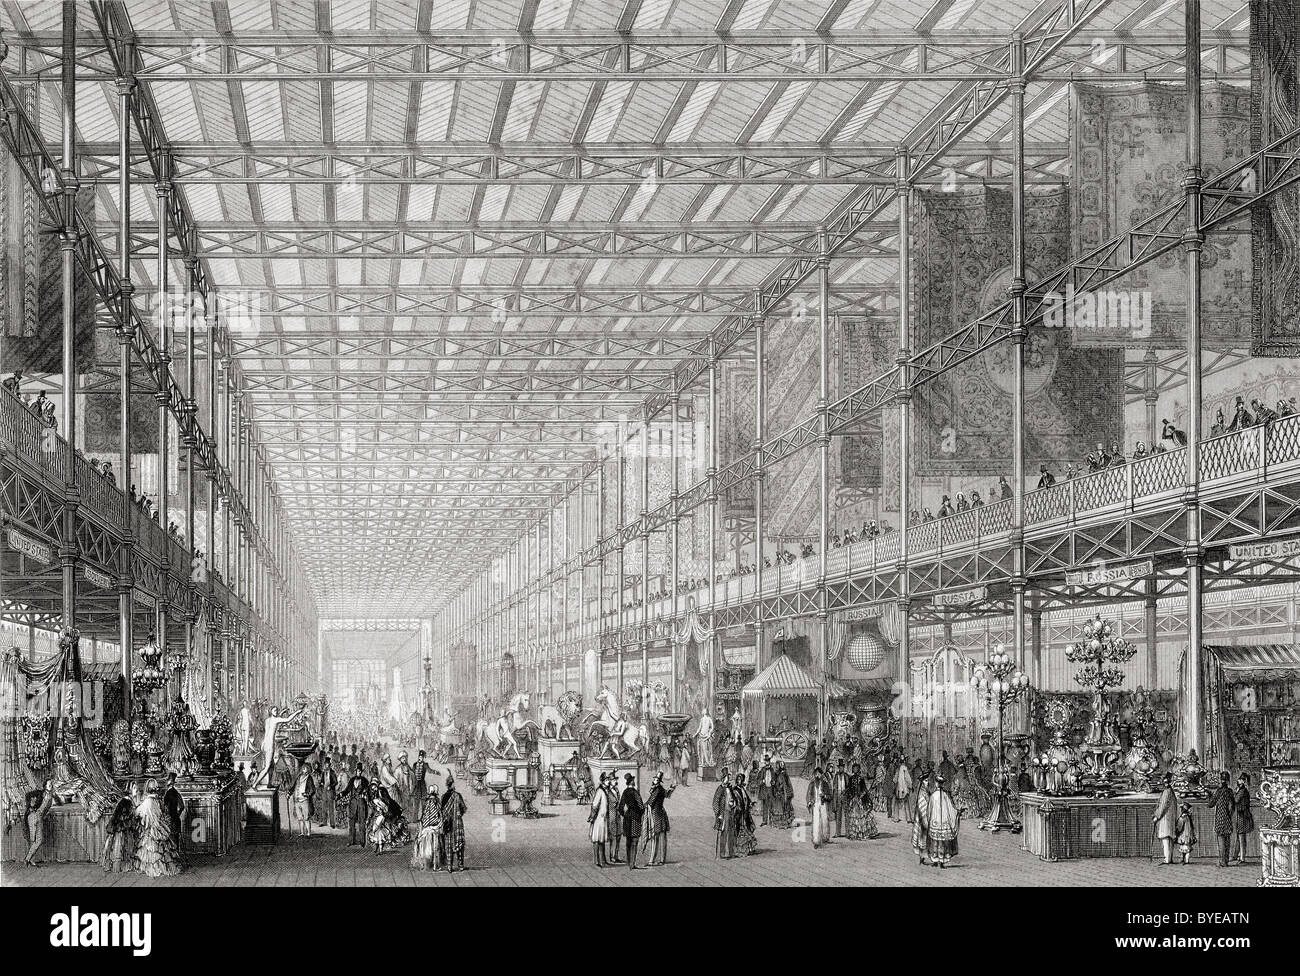 Interior of The Great Exhibition of the Works of Industry of all Nations in Hyde Park, London, England, 1851. - Stock Image